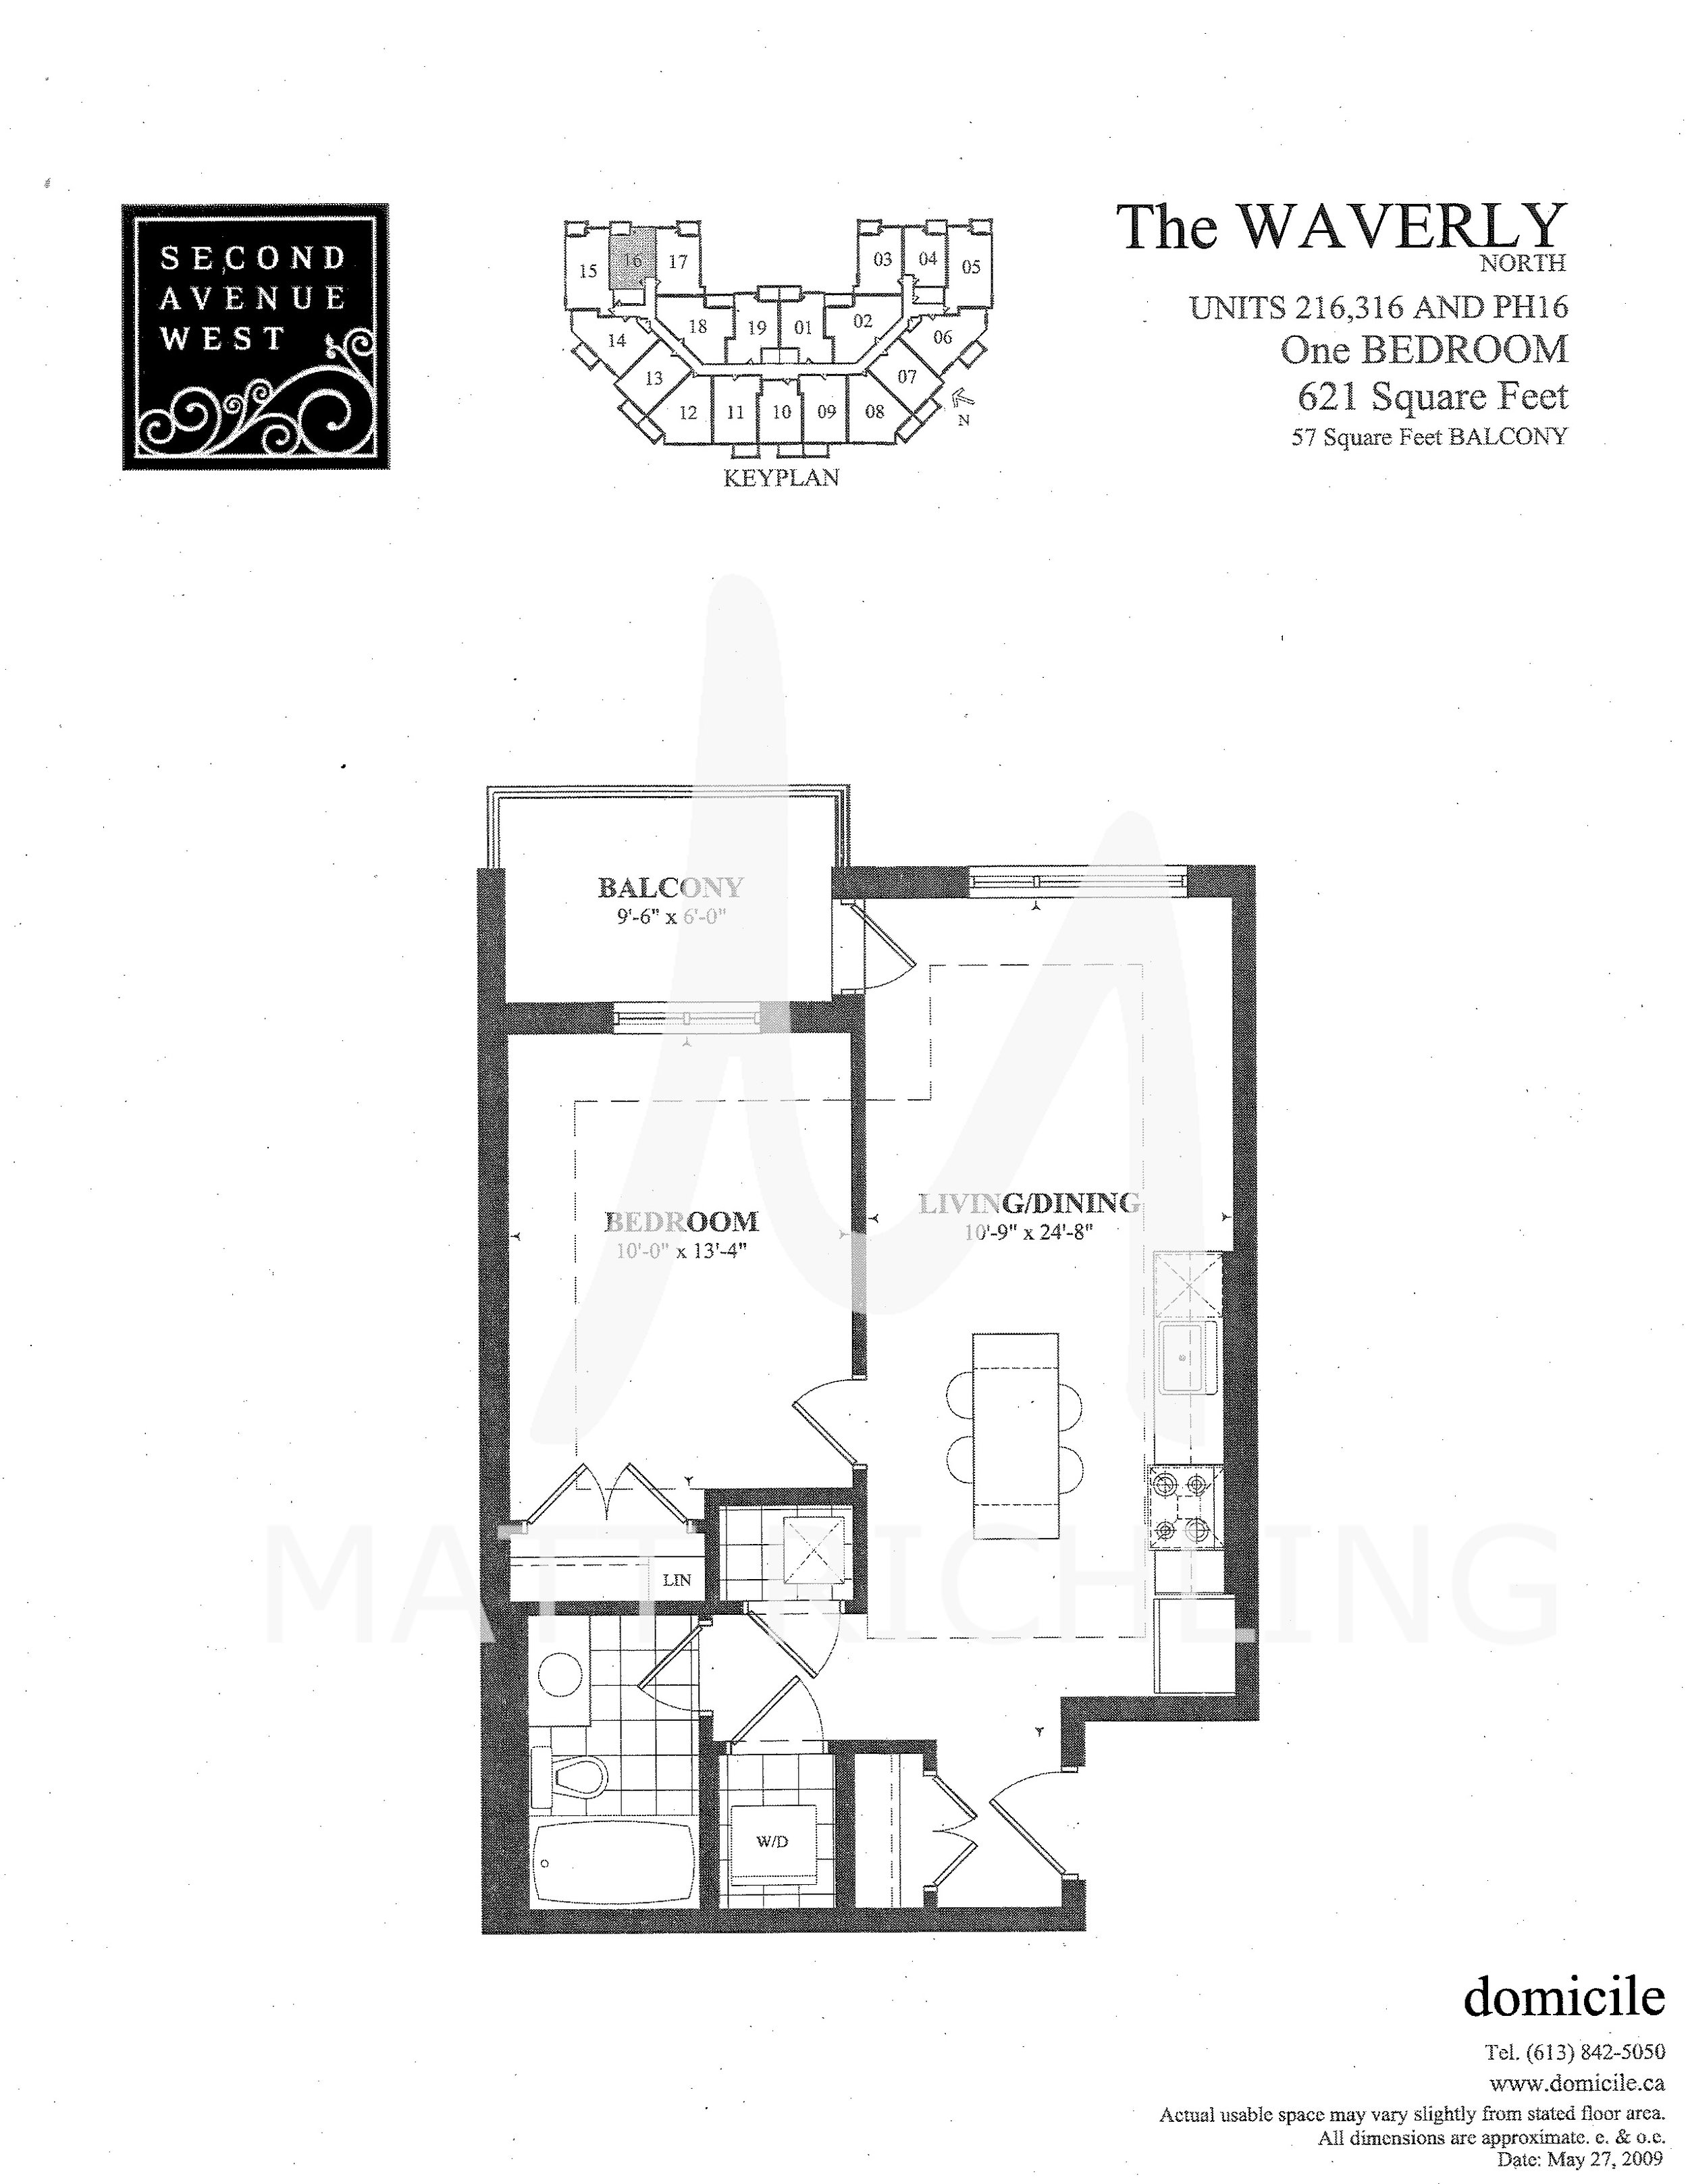 The-Waverly---1-Bed---216,316,PH16.jpg